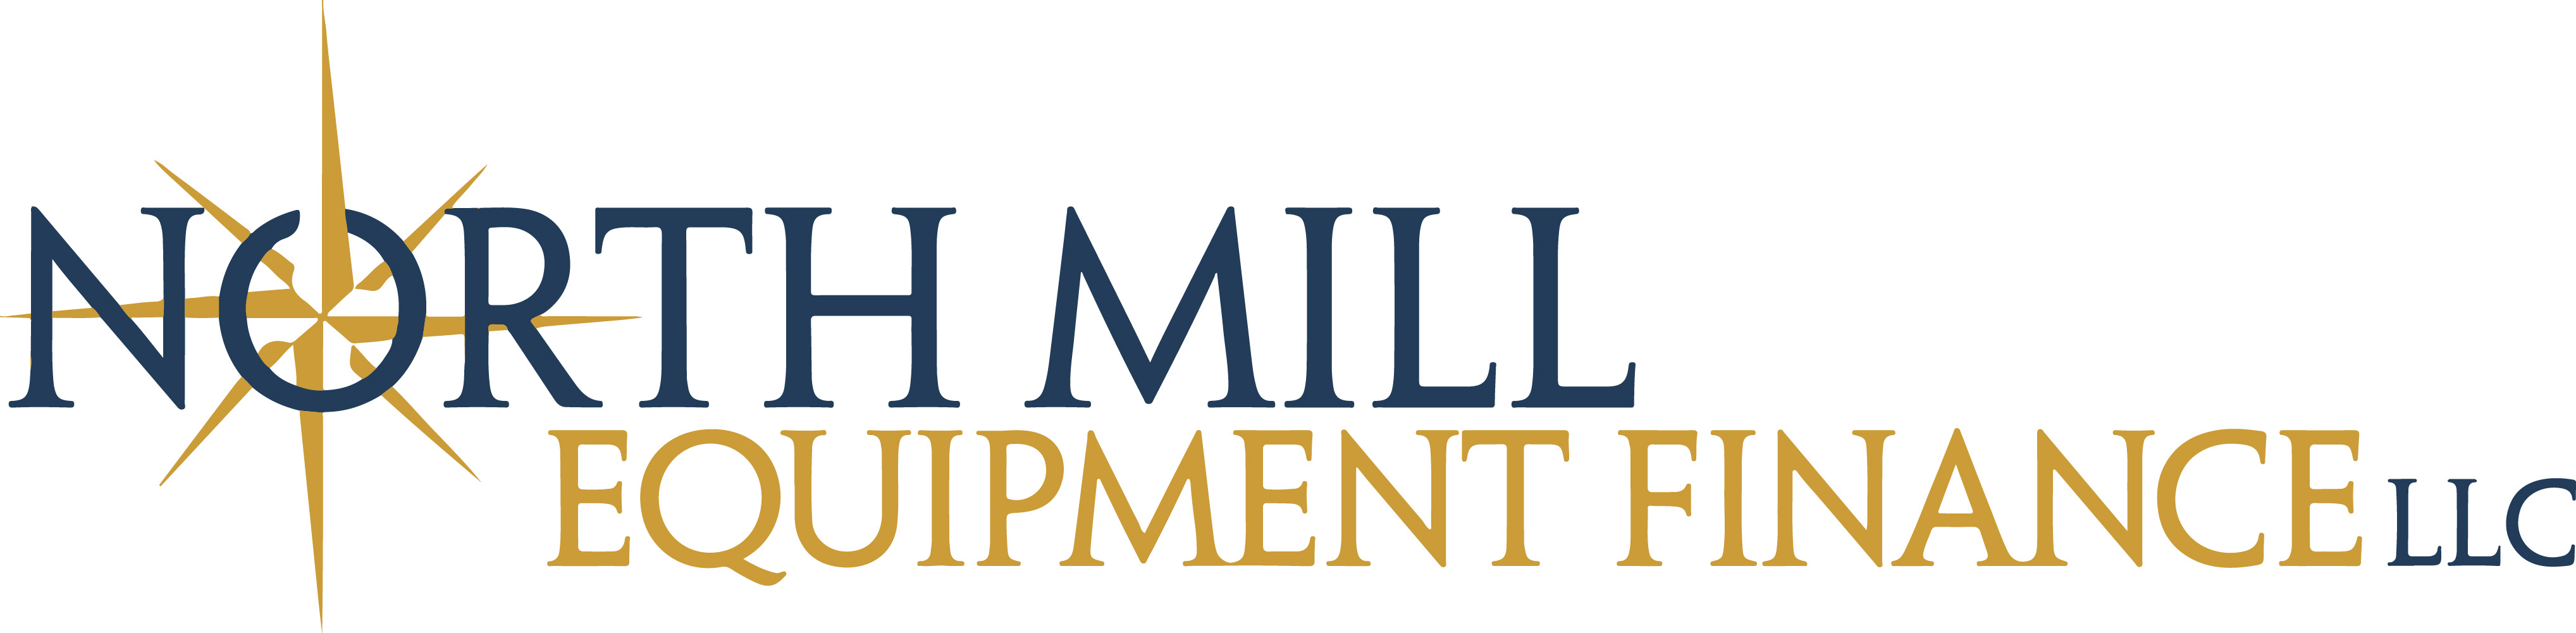 North Mill Equipment Finance